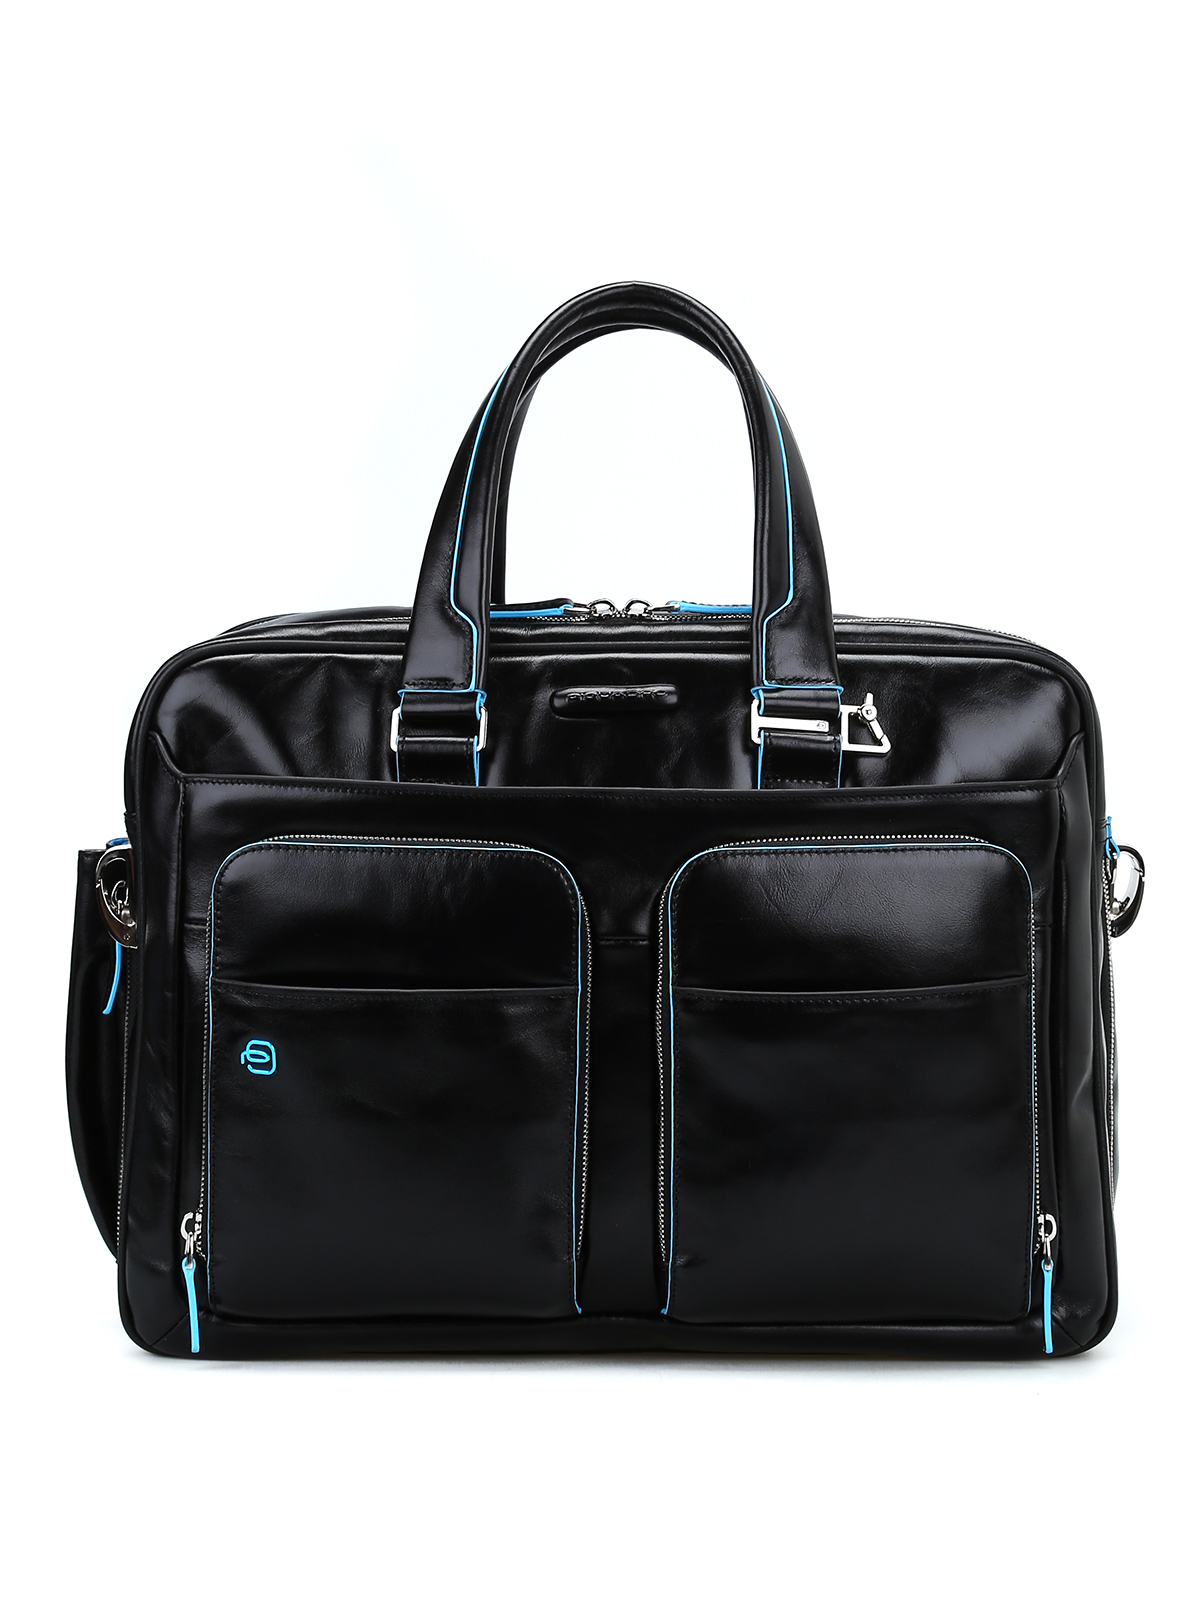 Piquadro - Brushed leather black briefcase